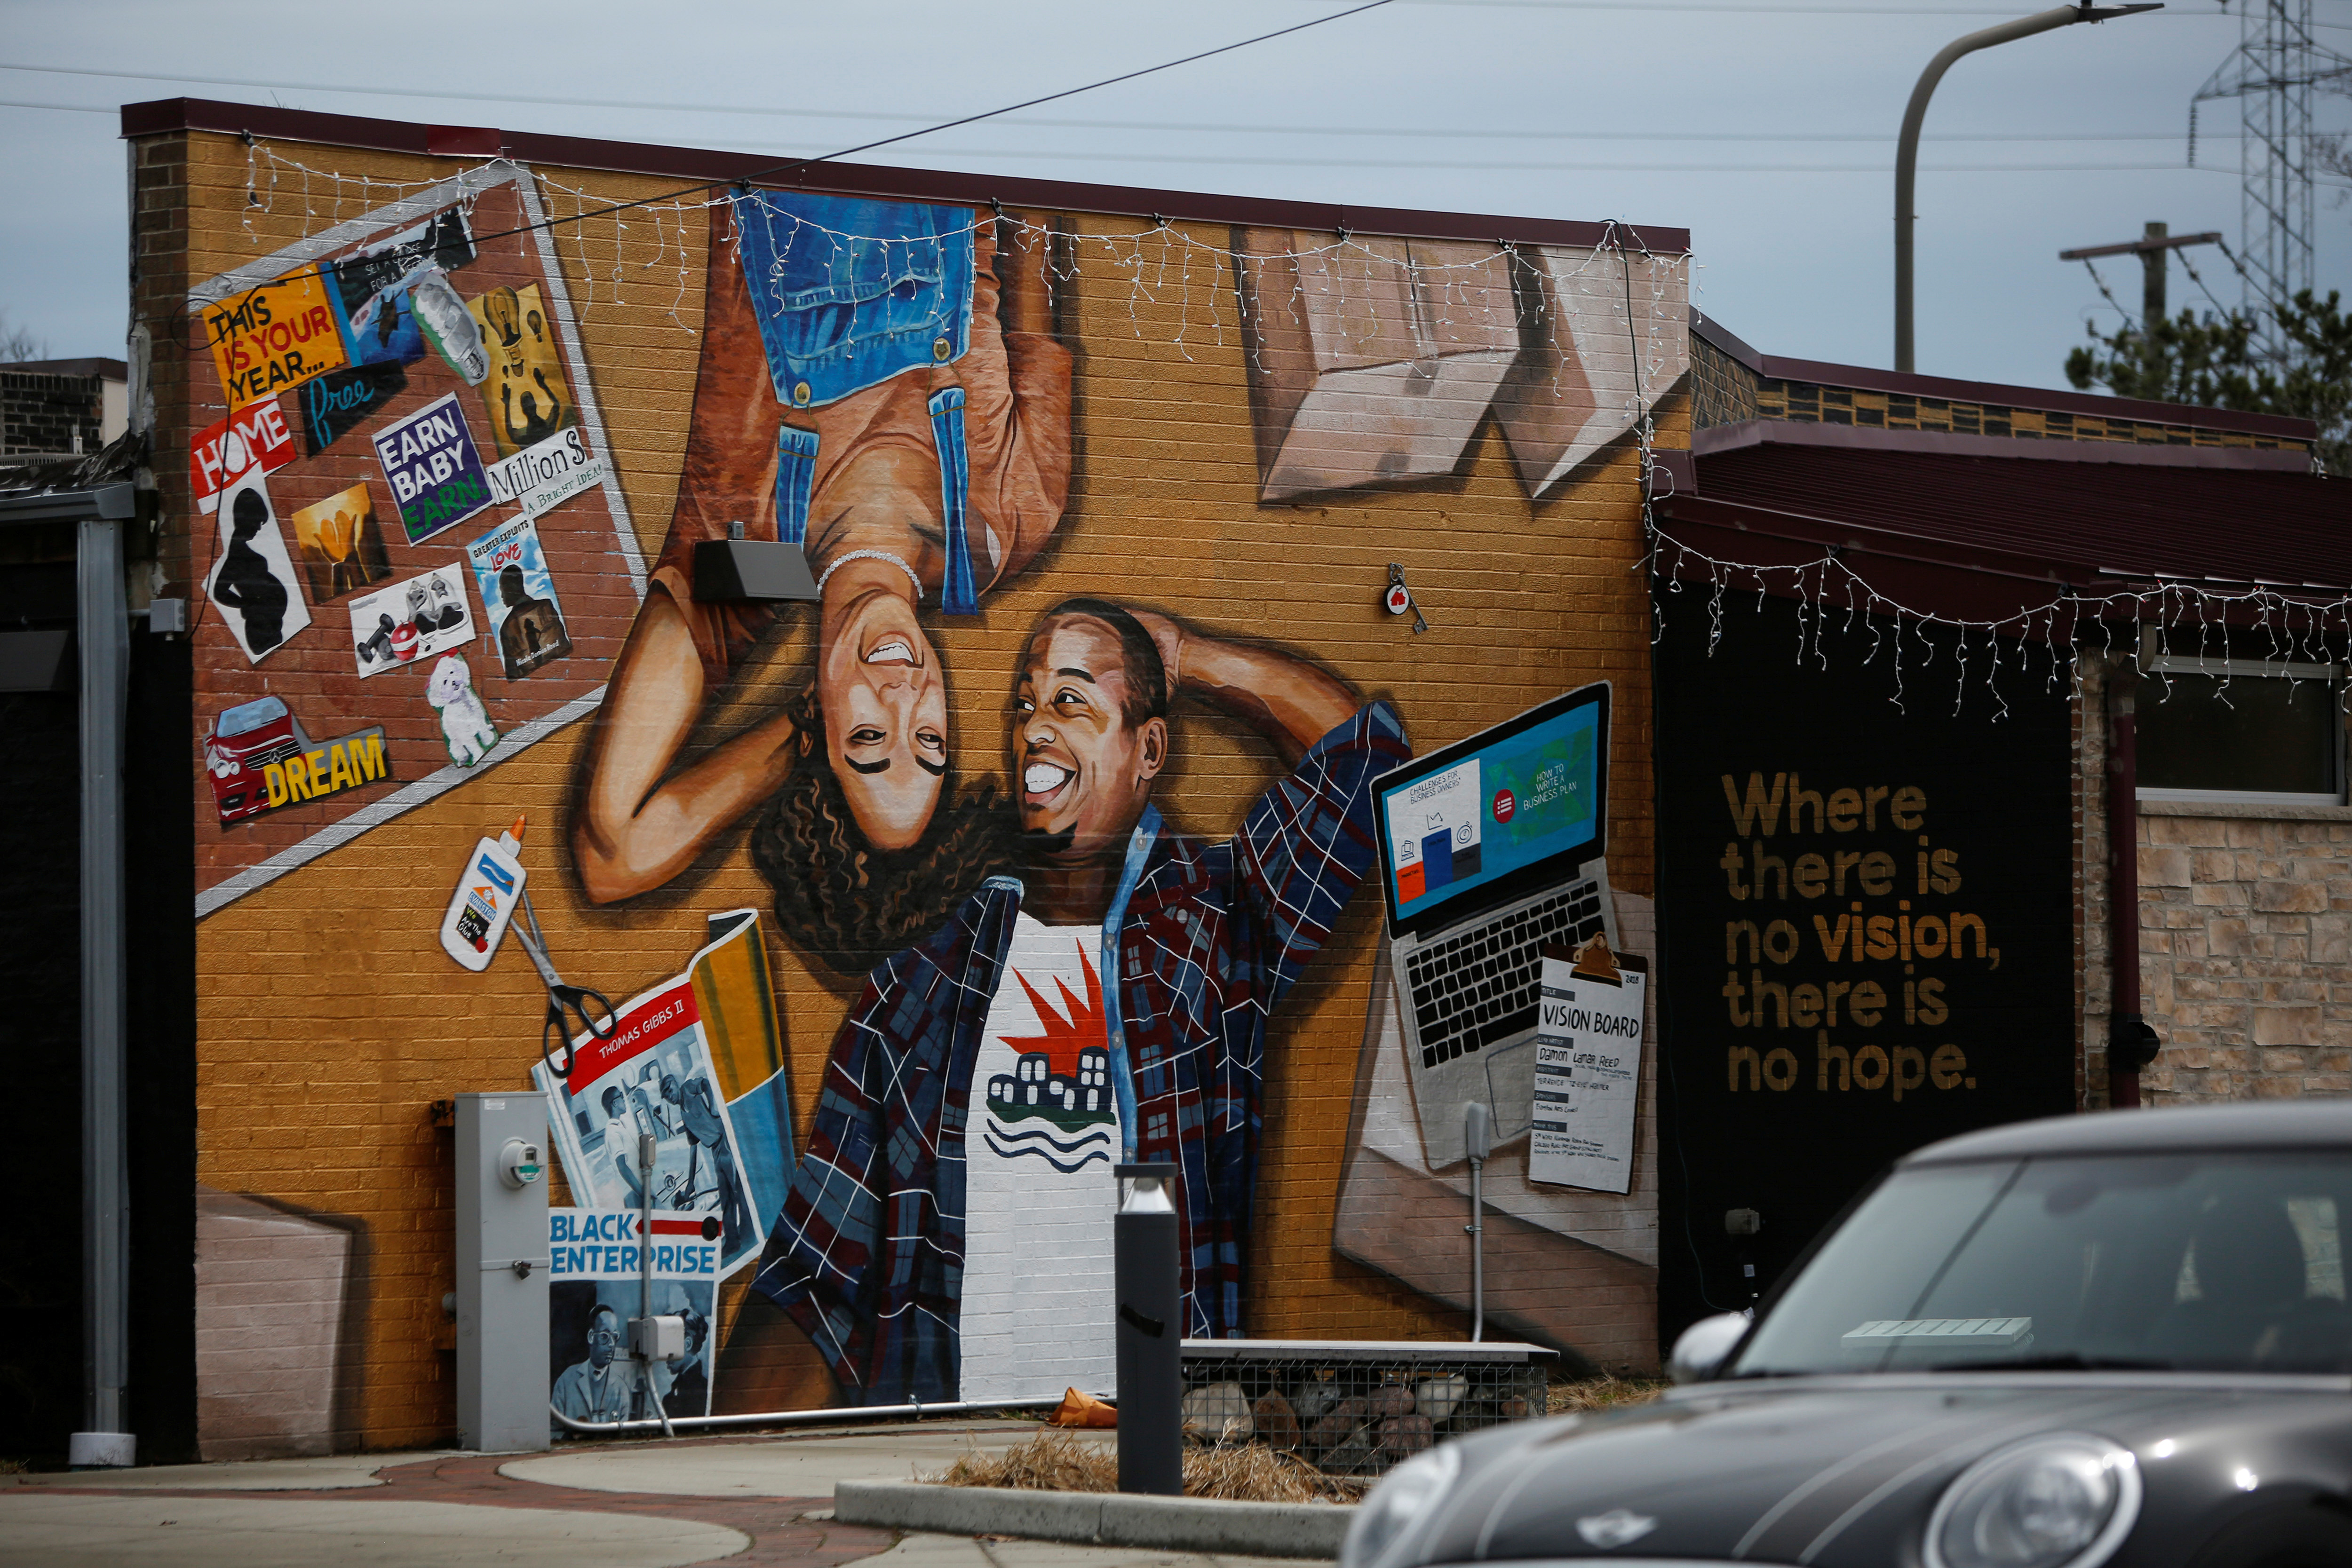 A mural is displayed on Litehouse Whole Food Grill on Dodge Avenue in the Fifth Ward, known as the historic Black community, in Evanston, Illinois, U.S., March 18, 2021.